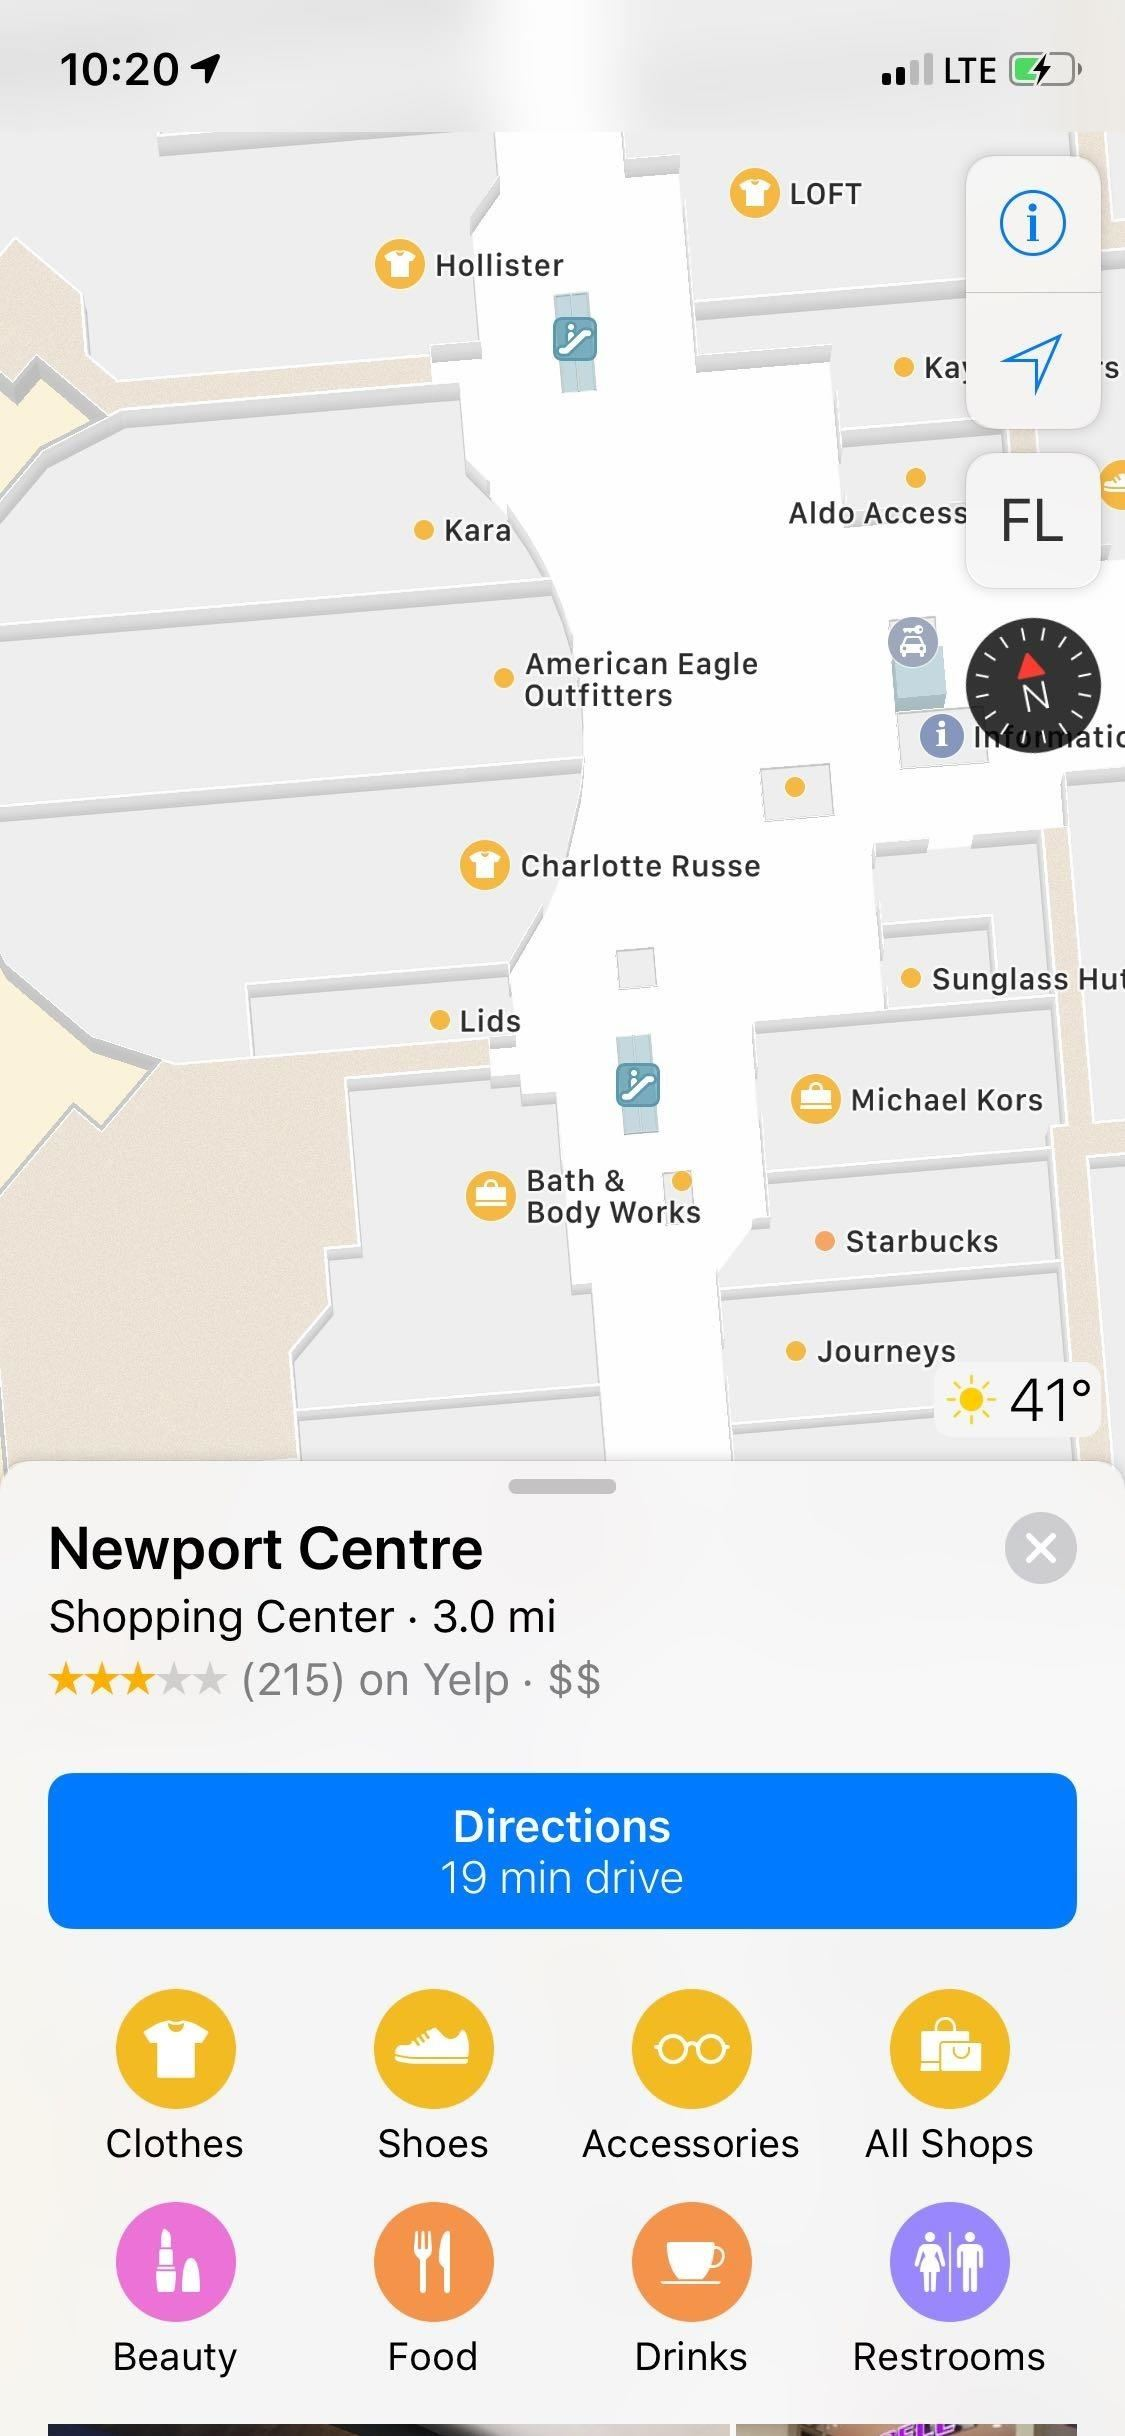 Showing indoor maps for shopping centers and airports in Apple maps